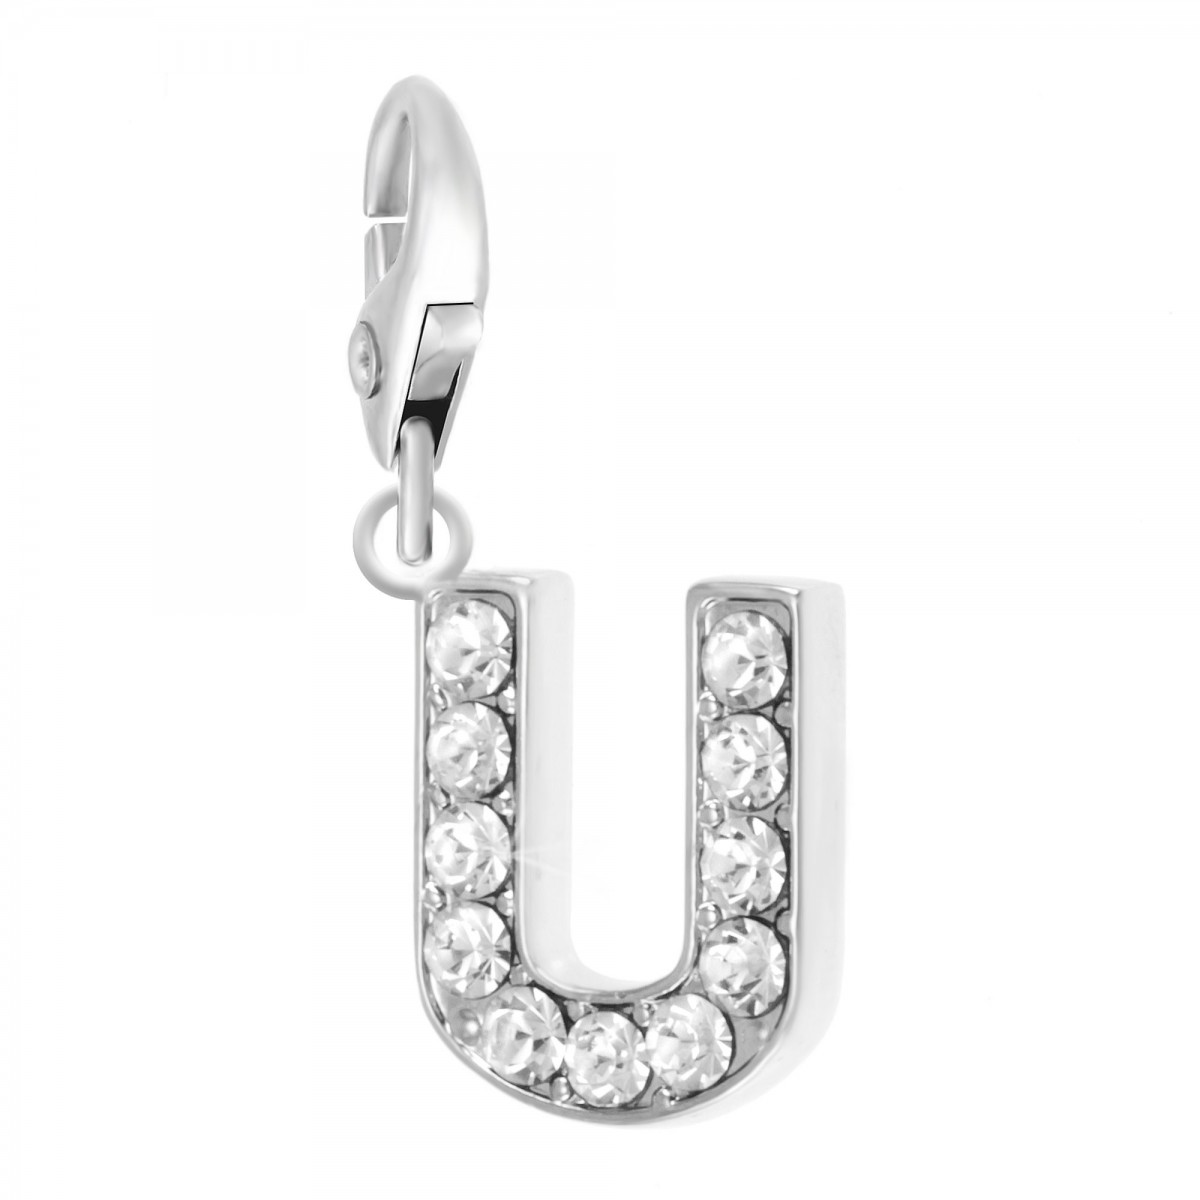 Charm Lettre U So Charm made with Crystal from Swarovski